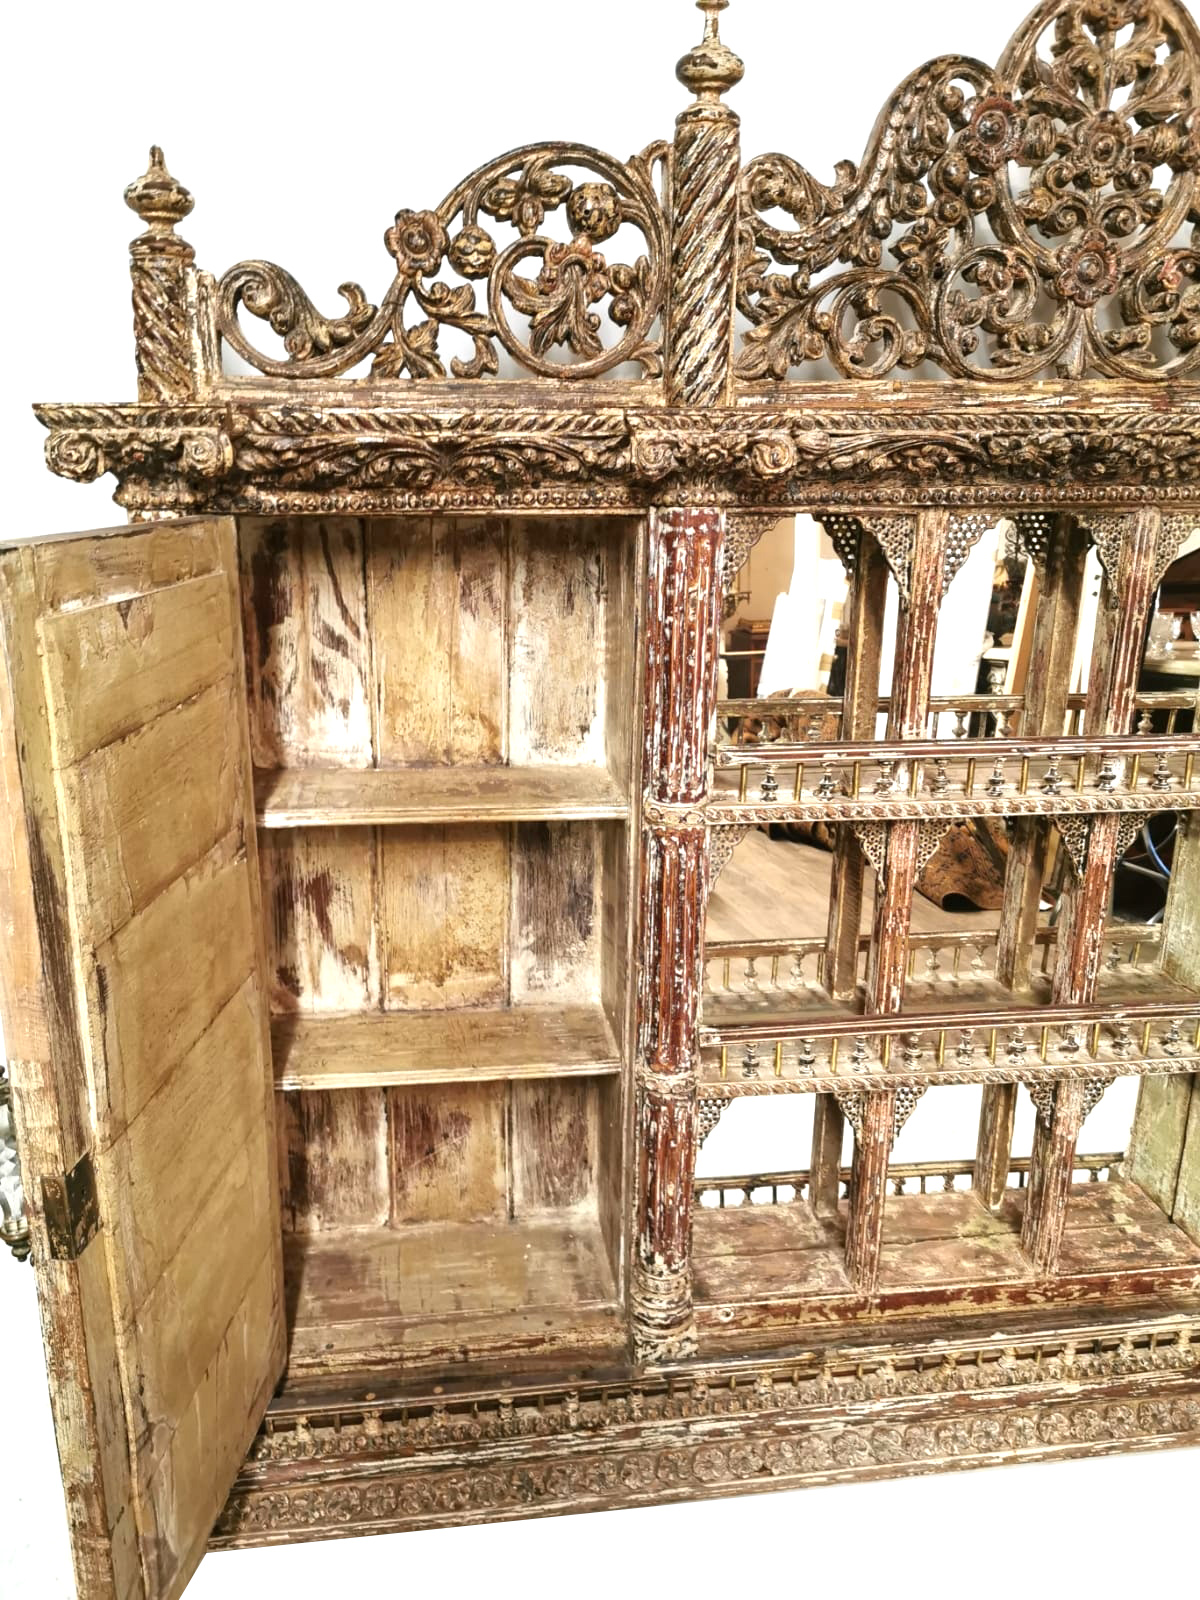 Lot 750 - A VENETIAN DESIGN WALL MOUNTED MIRRORED BACK CABINET With pierced floral fret work pediment above